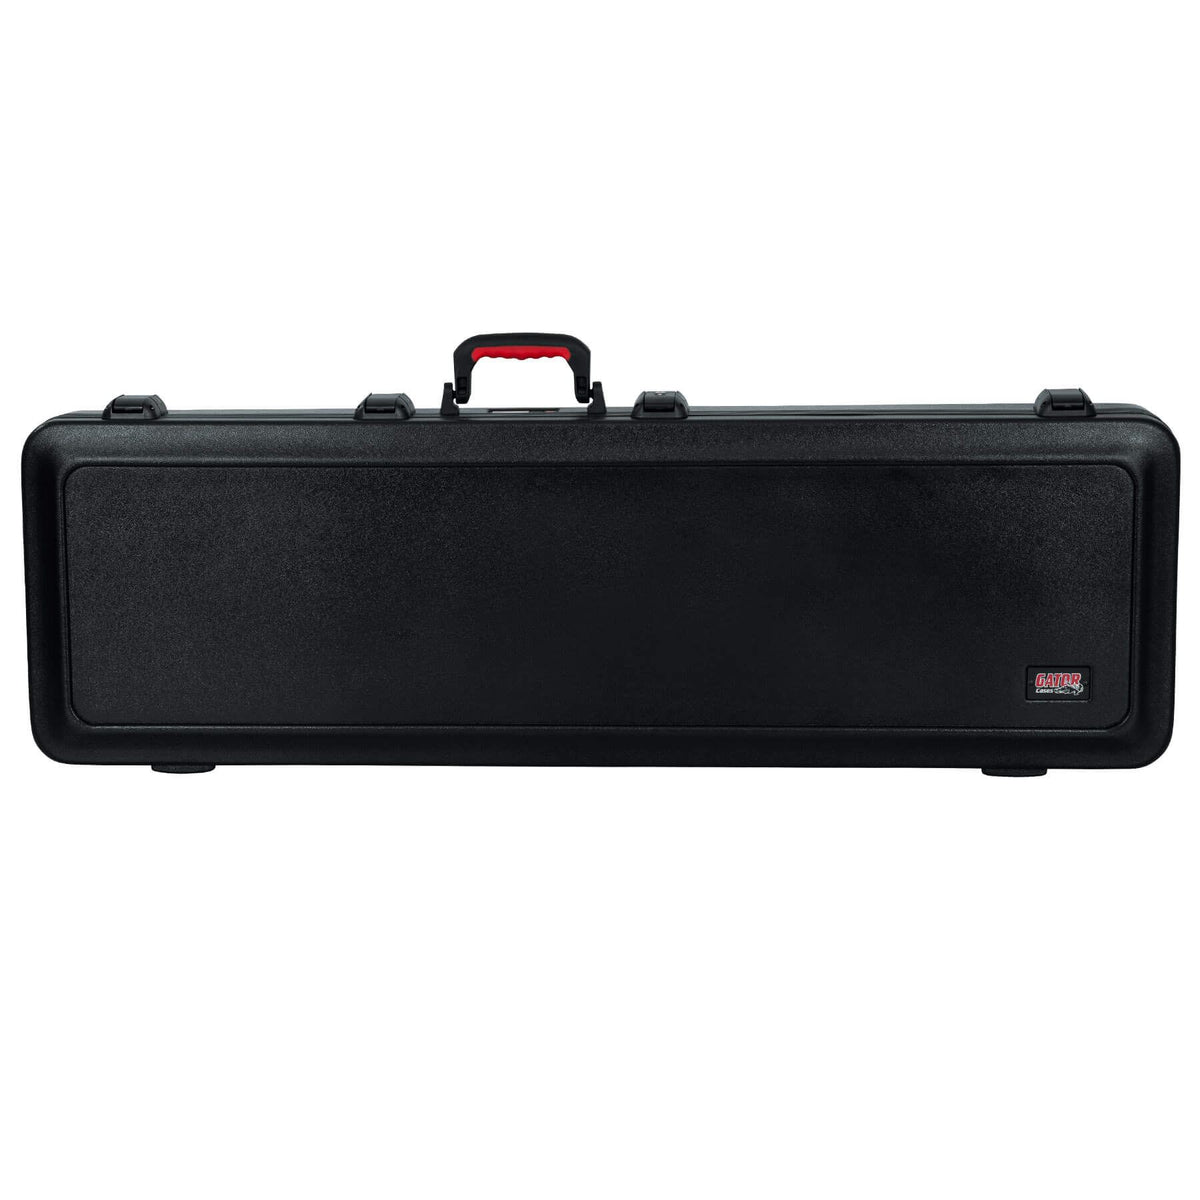 Gator ATA Bass Guitar Case fits Fender Standard Jazz Bass 5 String